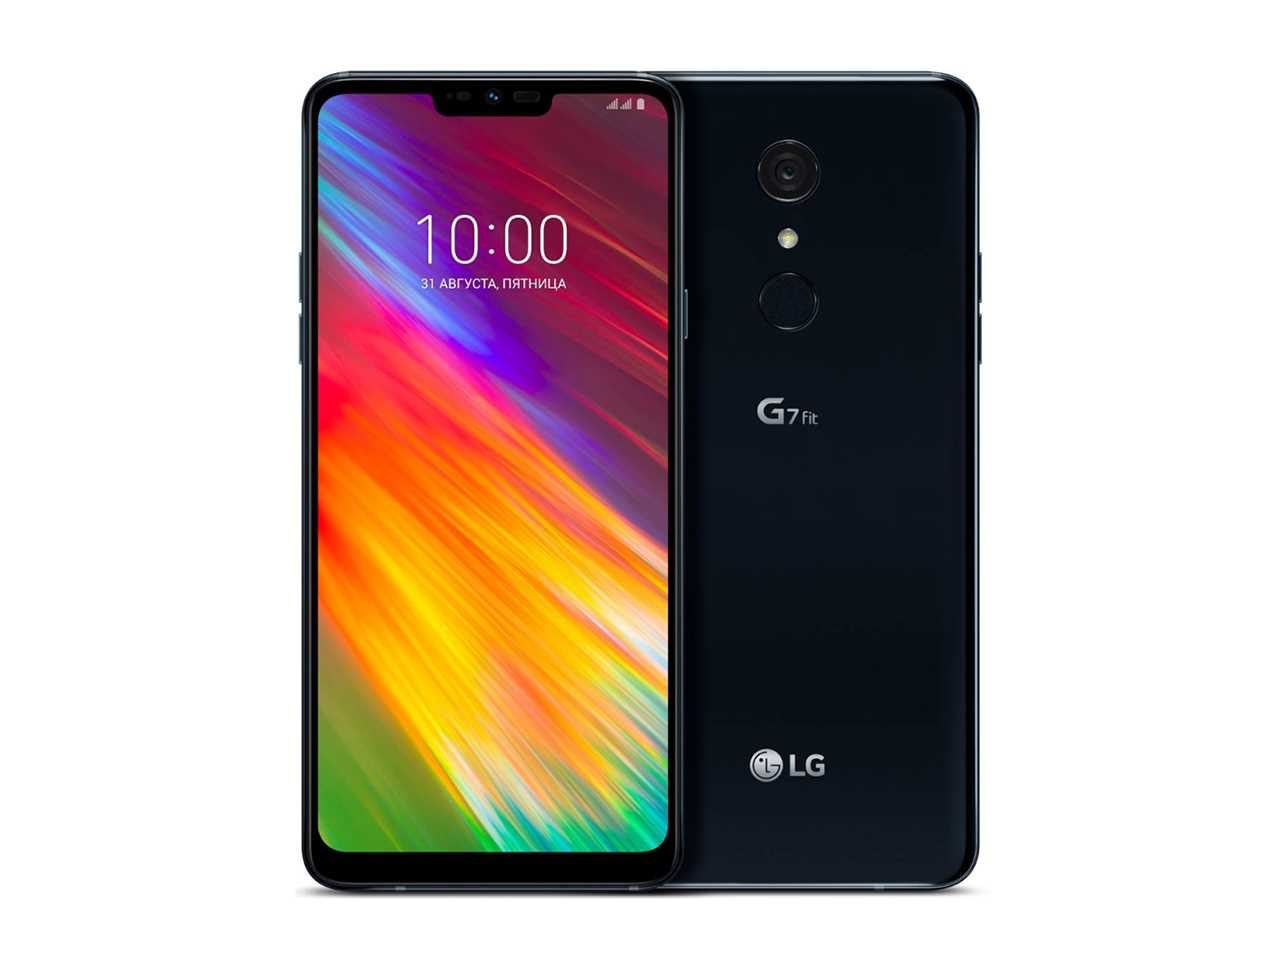 lg-magazine_featured-product_lg-g7fit.jpg